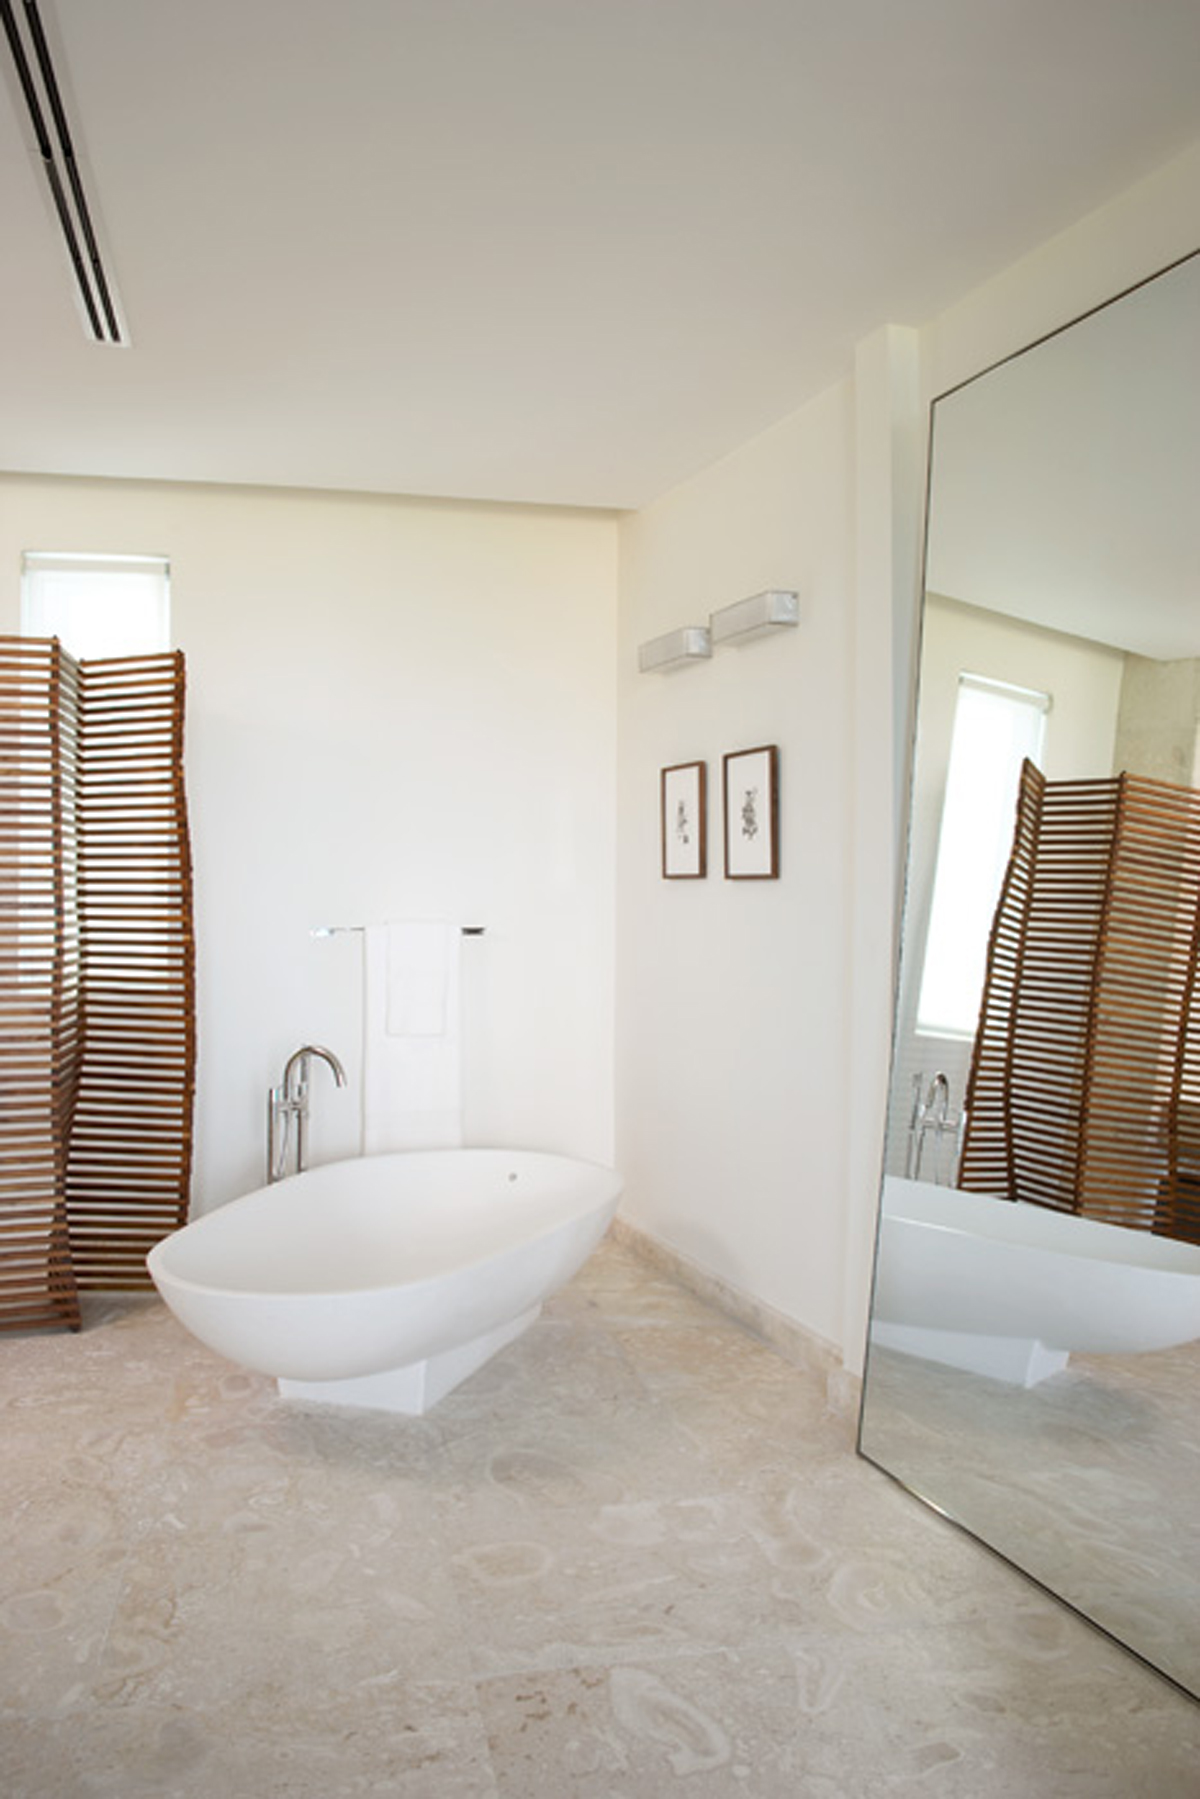 Miami Beach Townhouse by Magdalena Keck - Bathroom